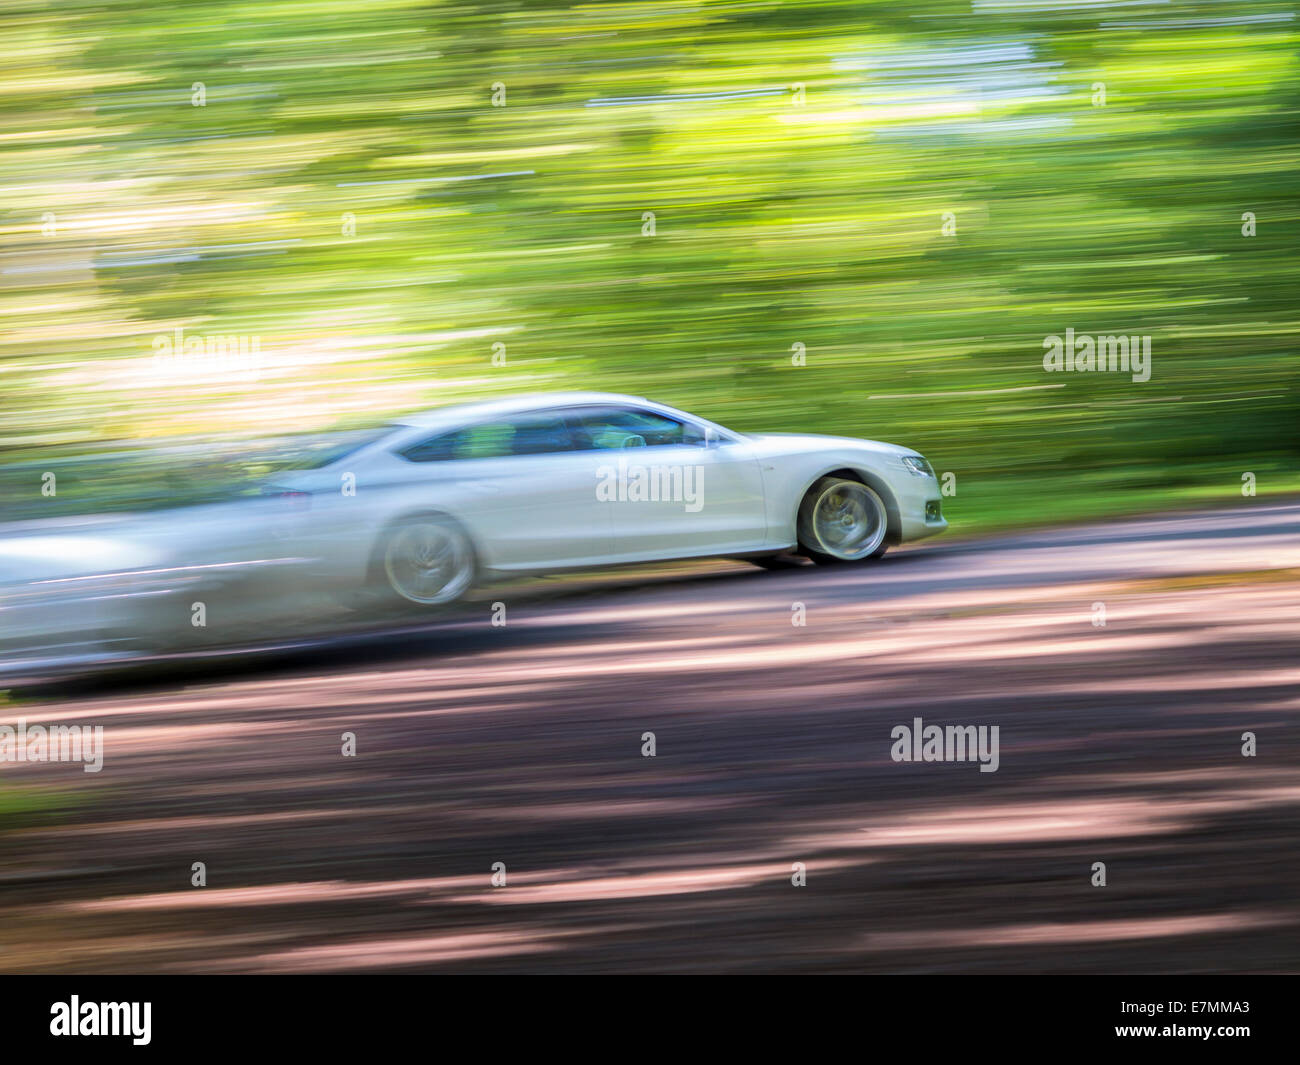 Acceleration. Foot down hard on a woodland road. Panning, motion blur and camera angle used to give the effect - Stock Image